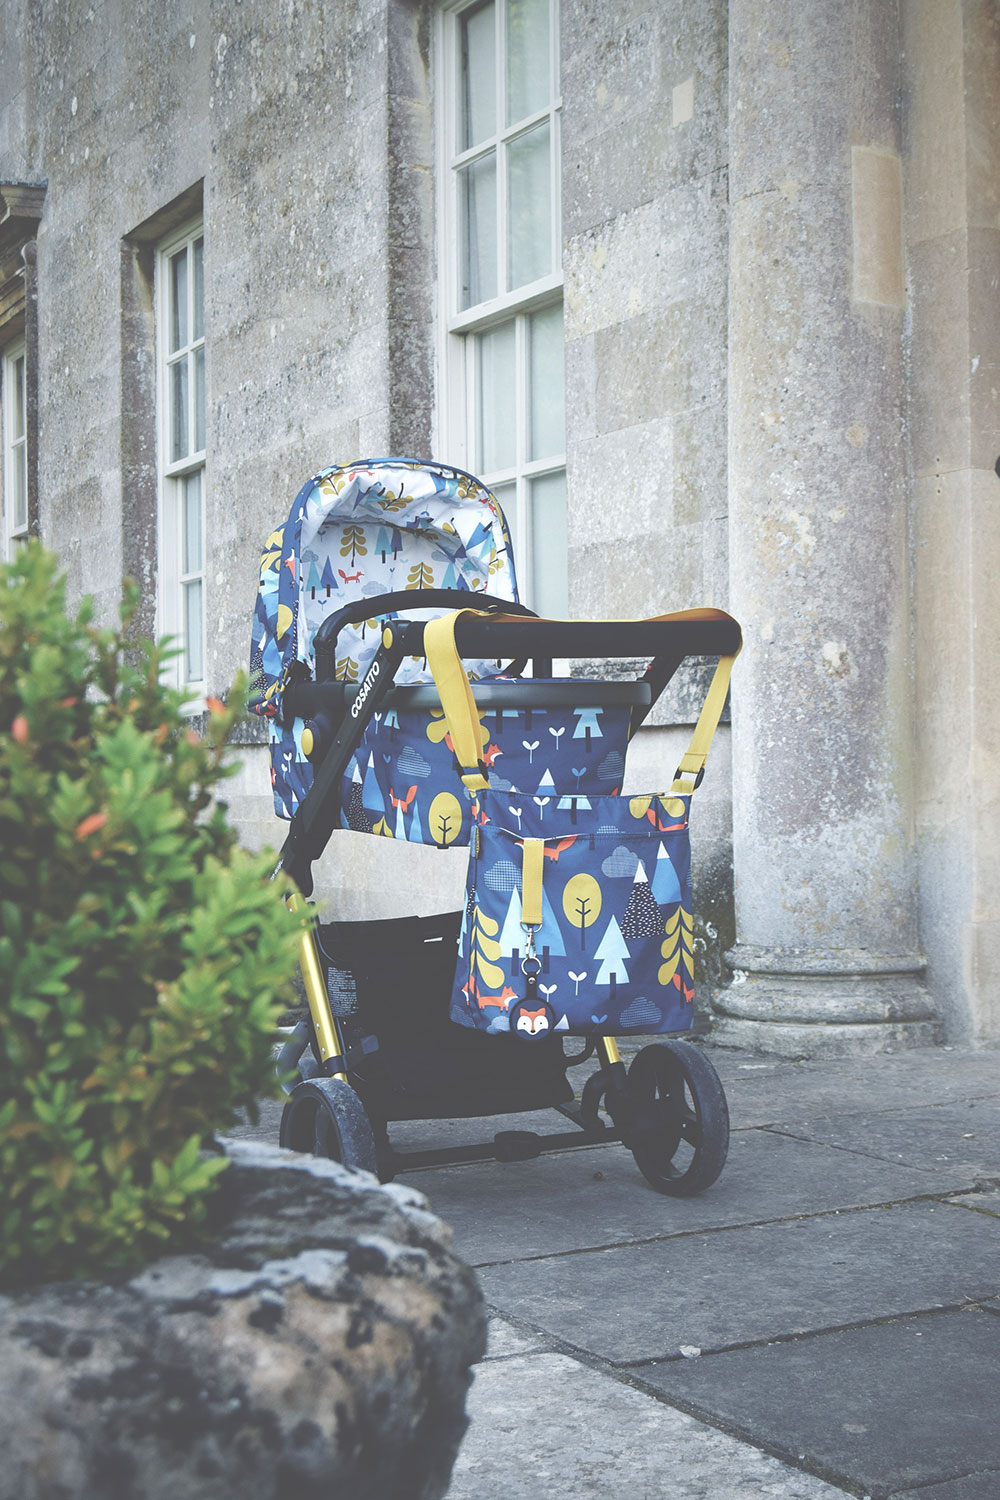 Our first thoughts on the drool-worthy Cosatto Giggle 2 travel system! - Cosatto Giggle 2 Travel System complete with carrycot, pushchair, raincover, cosy kit, with bumper bar, all-round suspension, spacious storage basket, from birth to toddler in fox tale print from Winstanley's Pramworld